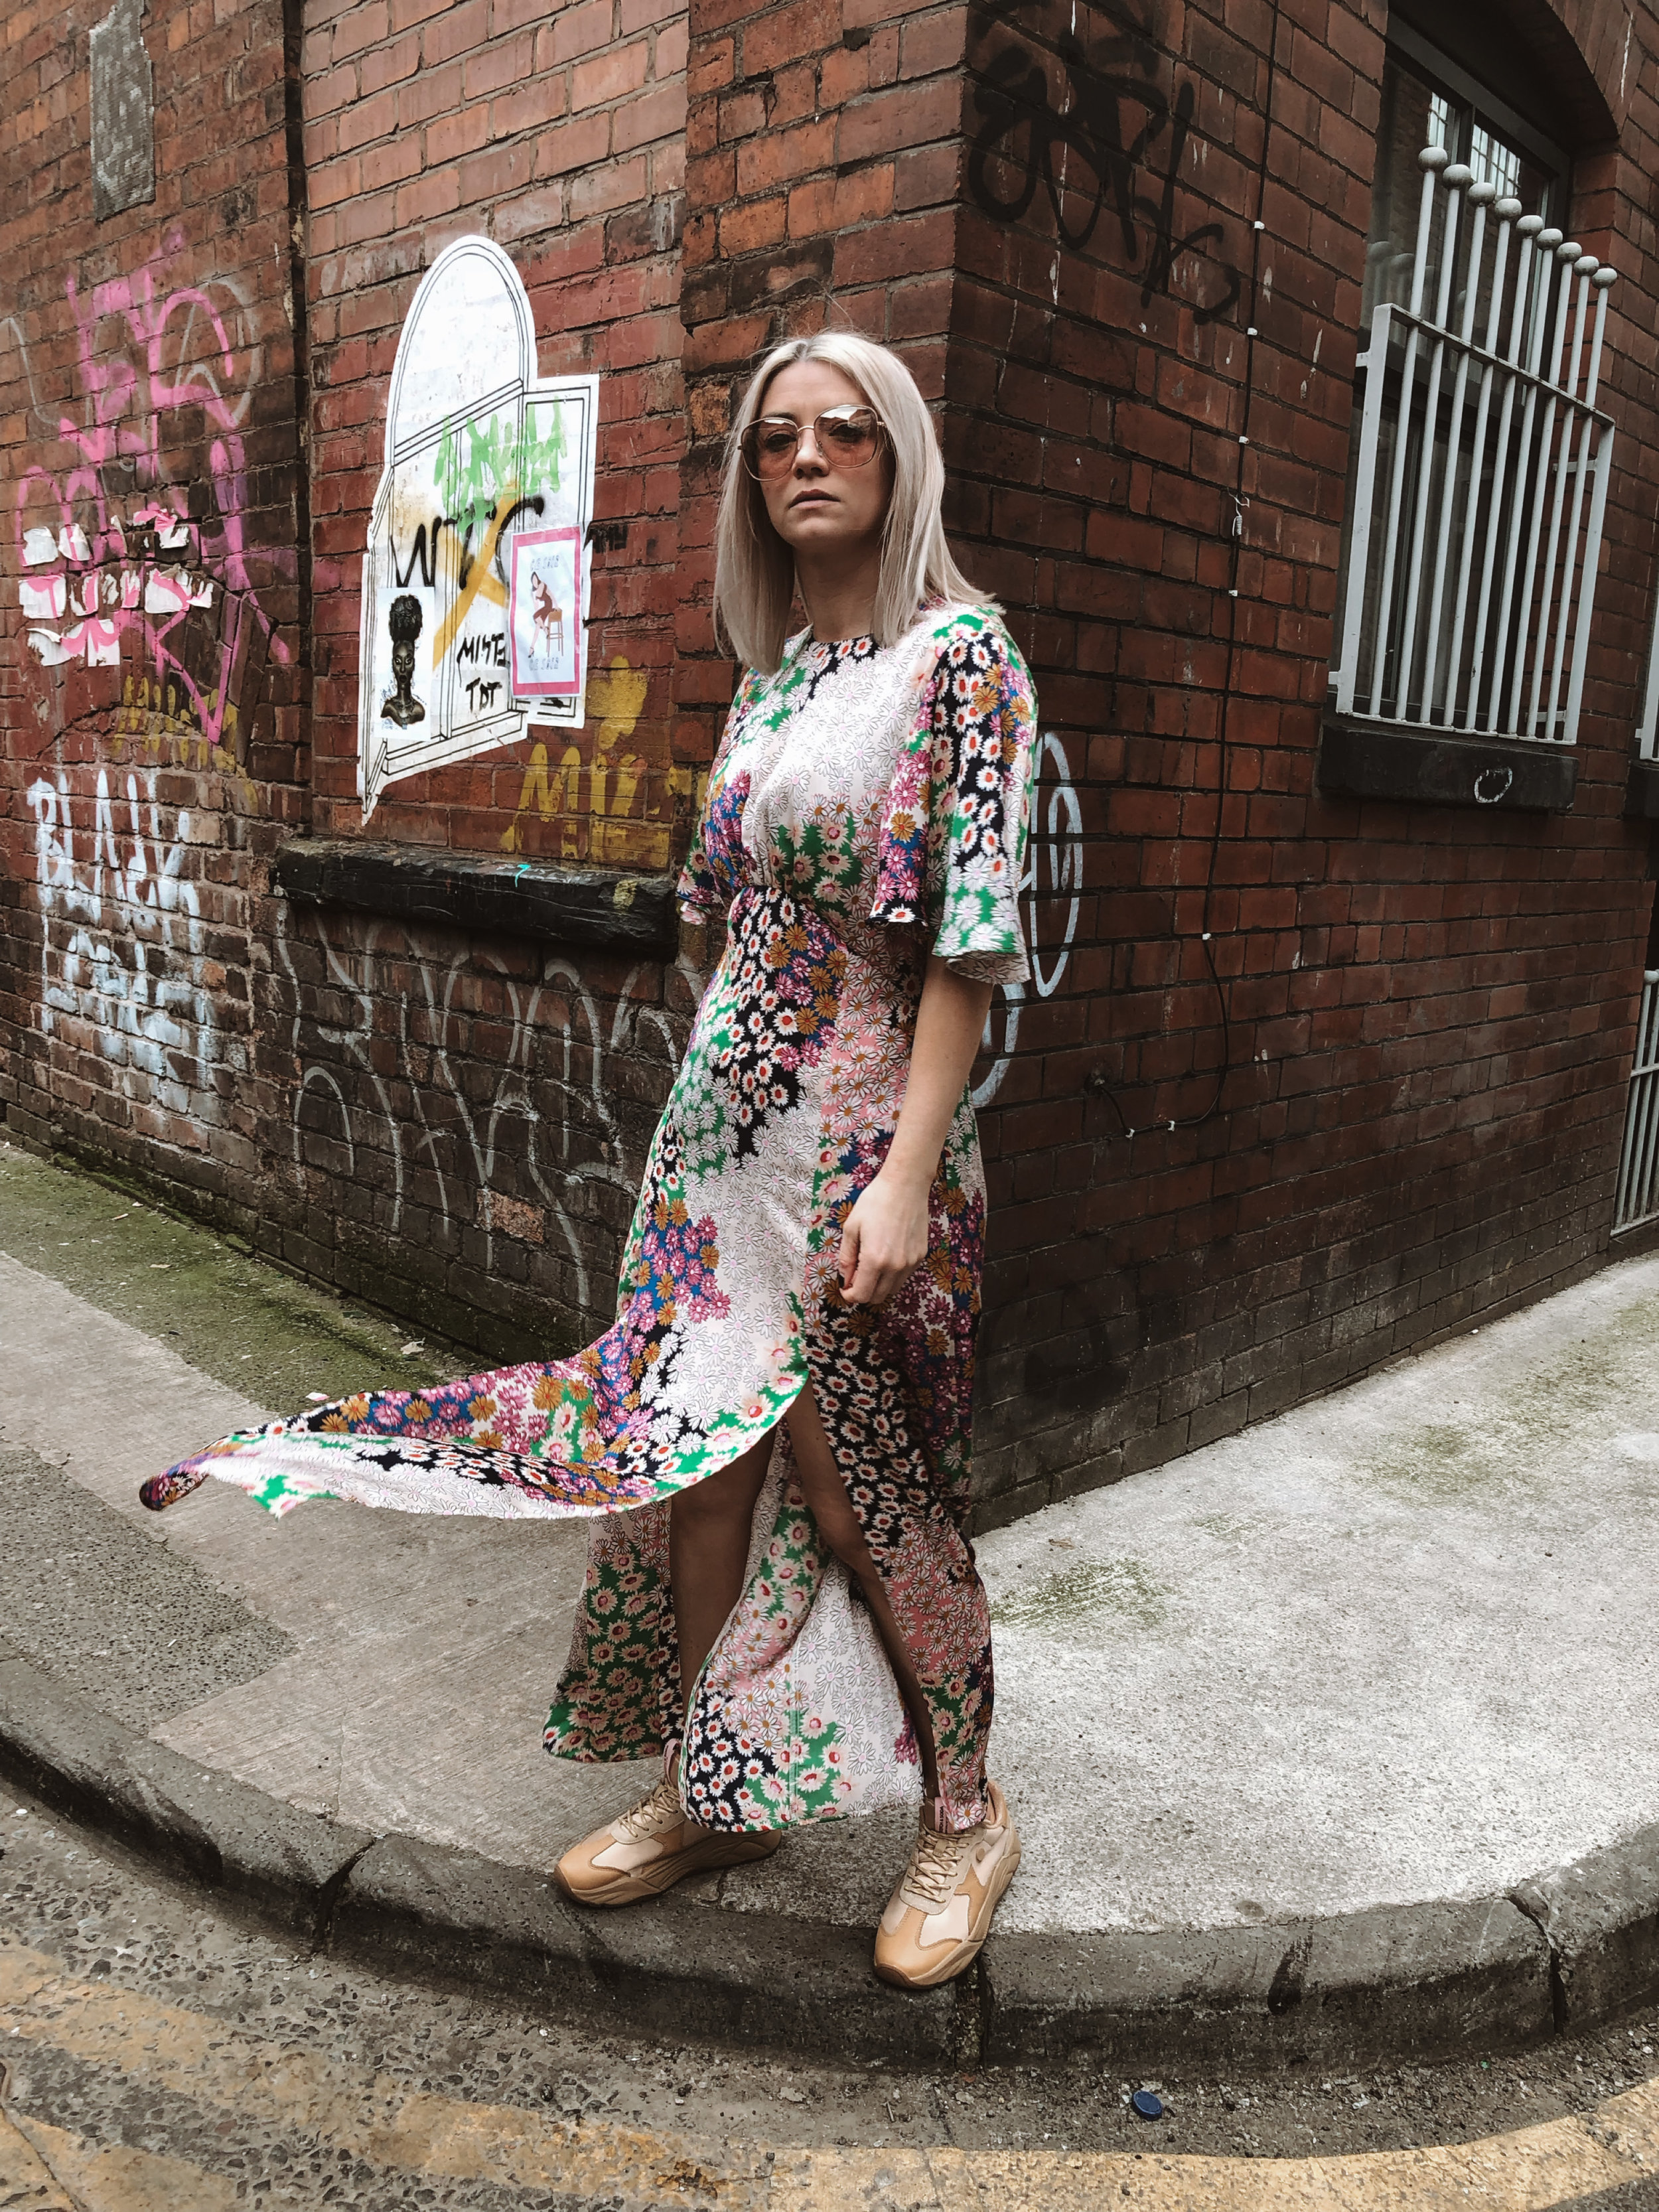 topshop auston dress, topshop floral dress, scotch and soda footwear, chunky trainers, summer dress, dresses and trainers, joey taylor, northern quarter 2